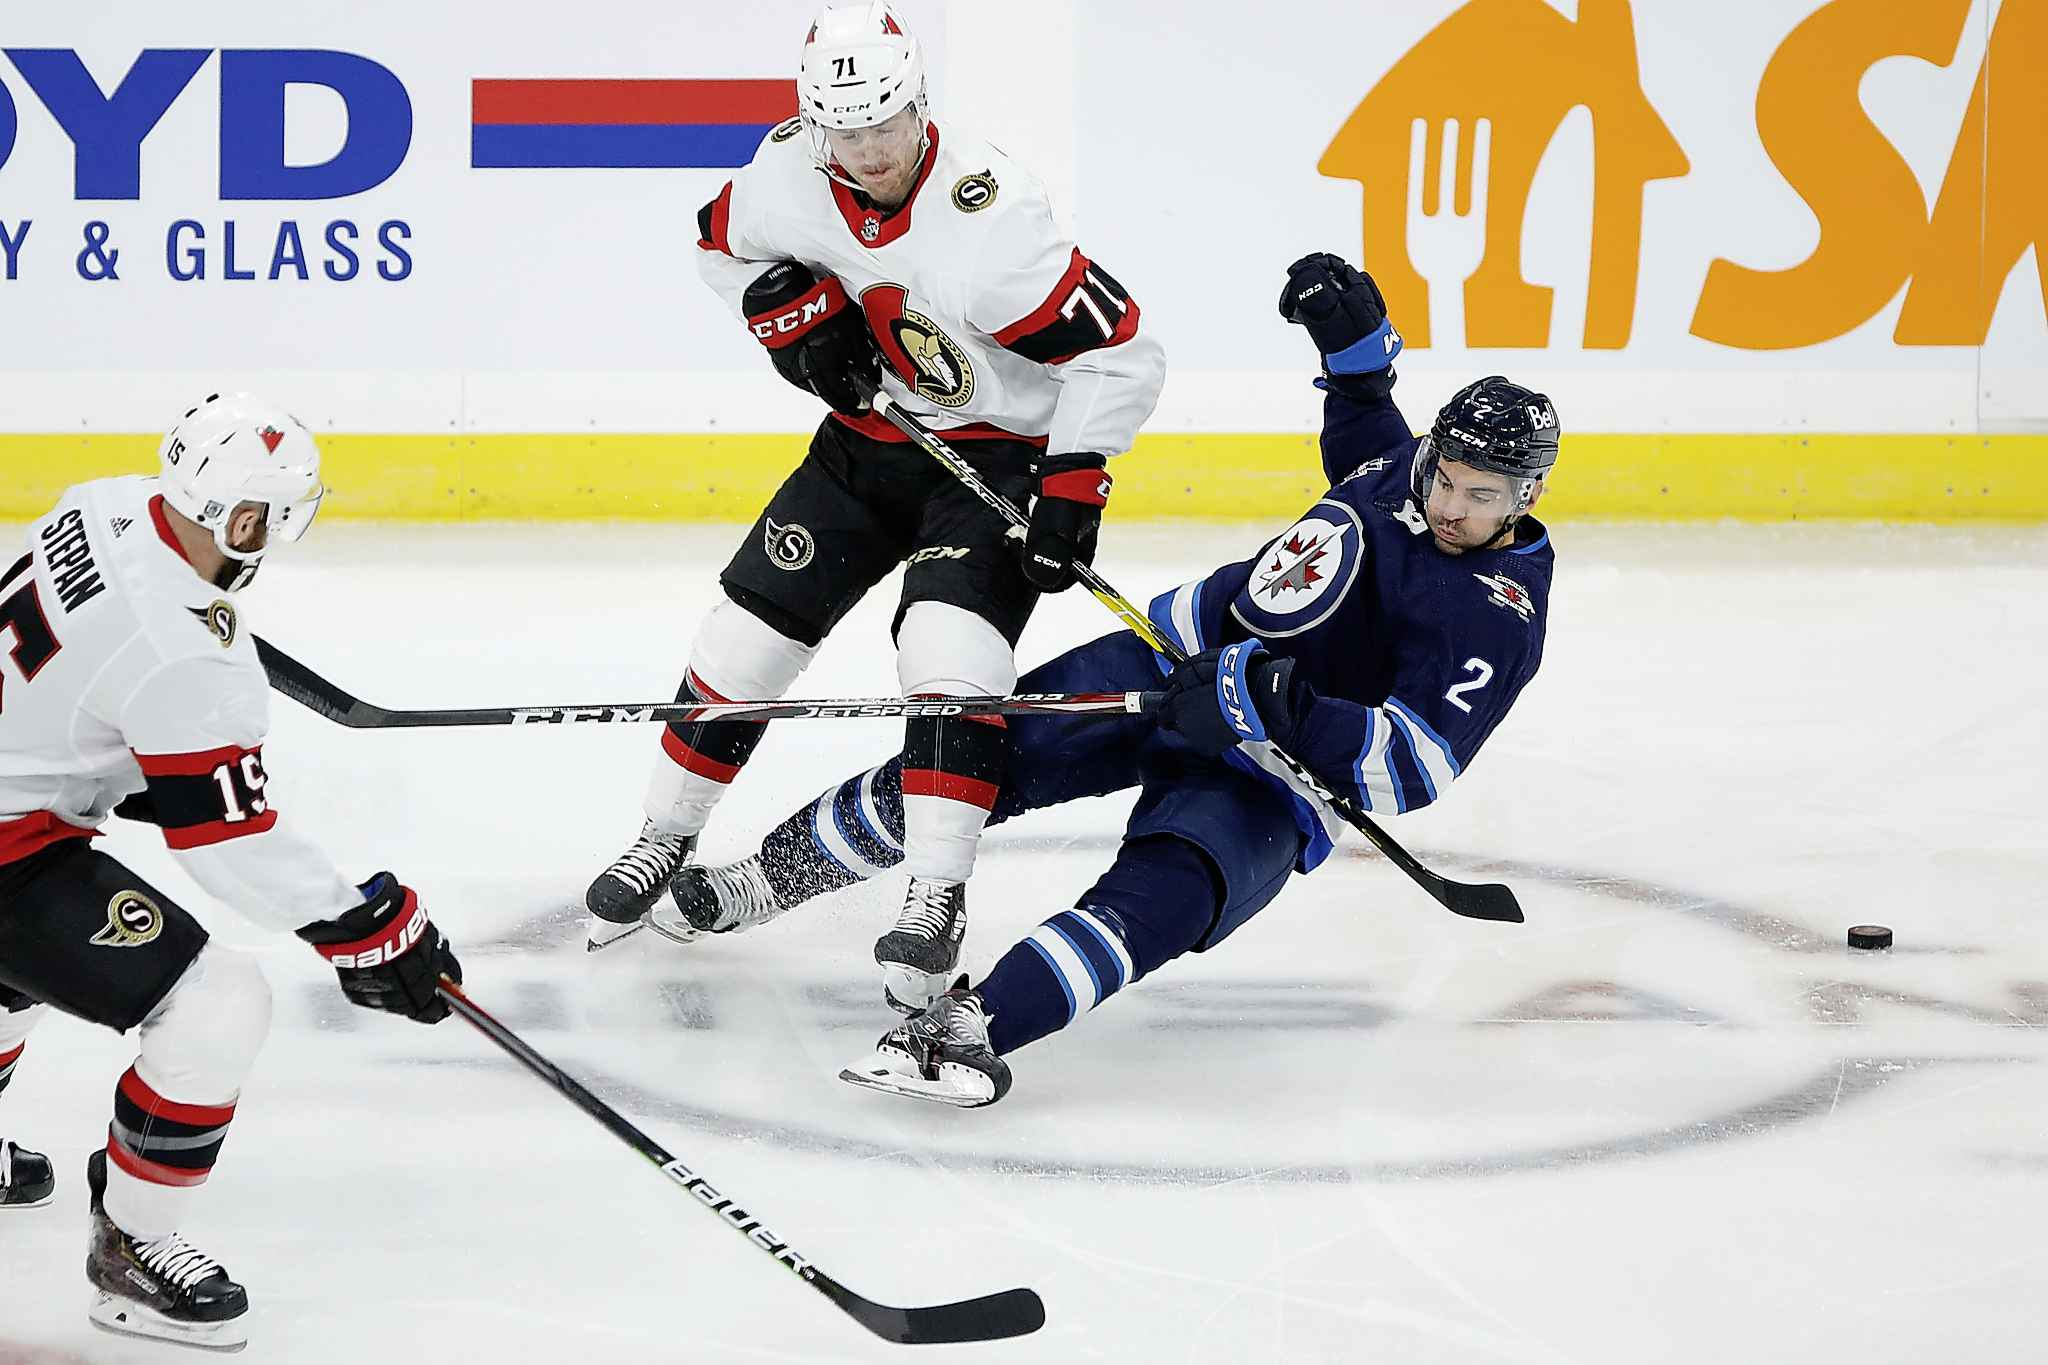 Winnipeg Jets' Dylan DeMelo (2) and Ottawa Senators' Chris Tierney (71) collide during first period NHL action in Winnipeg on Saturday, January 23, 2021. (John Woods / The Canadian Press)